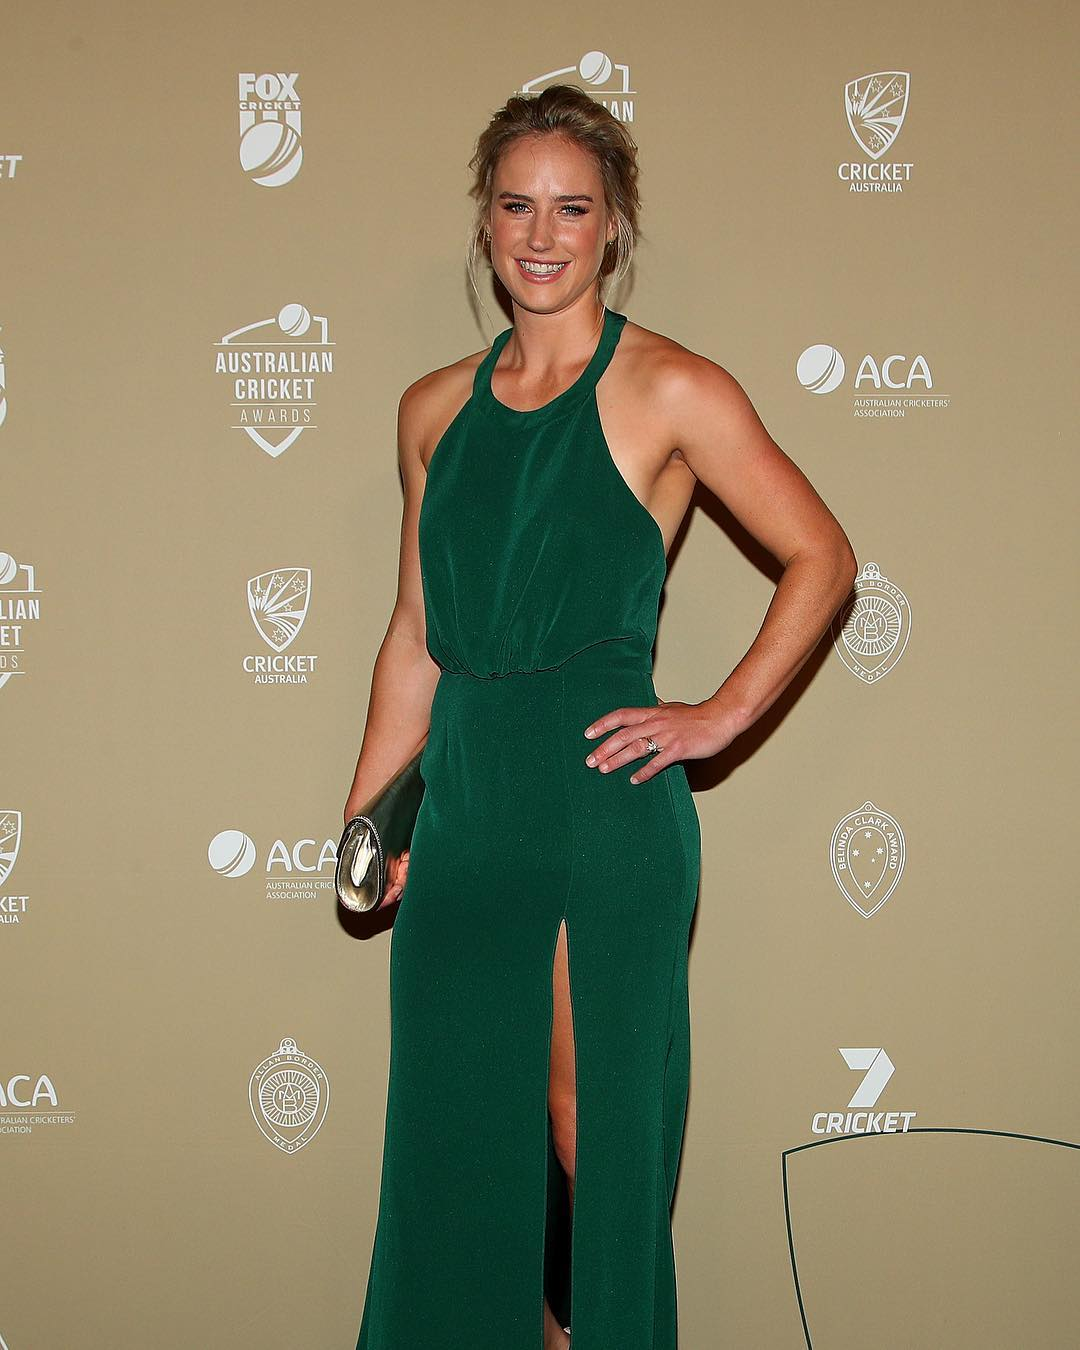 ellyse perry sexy smile